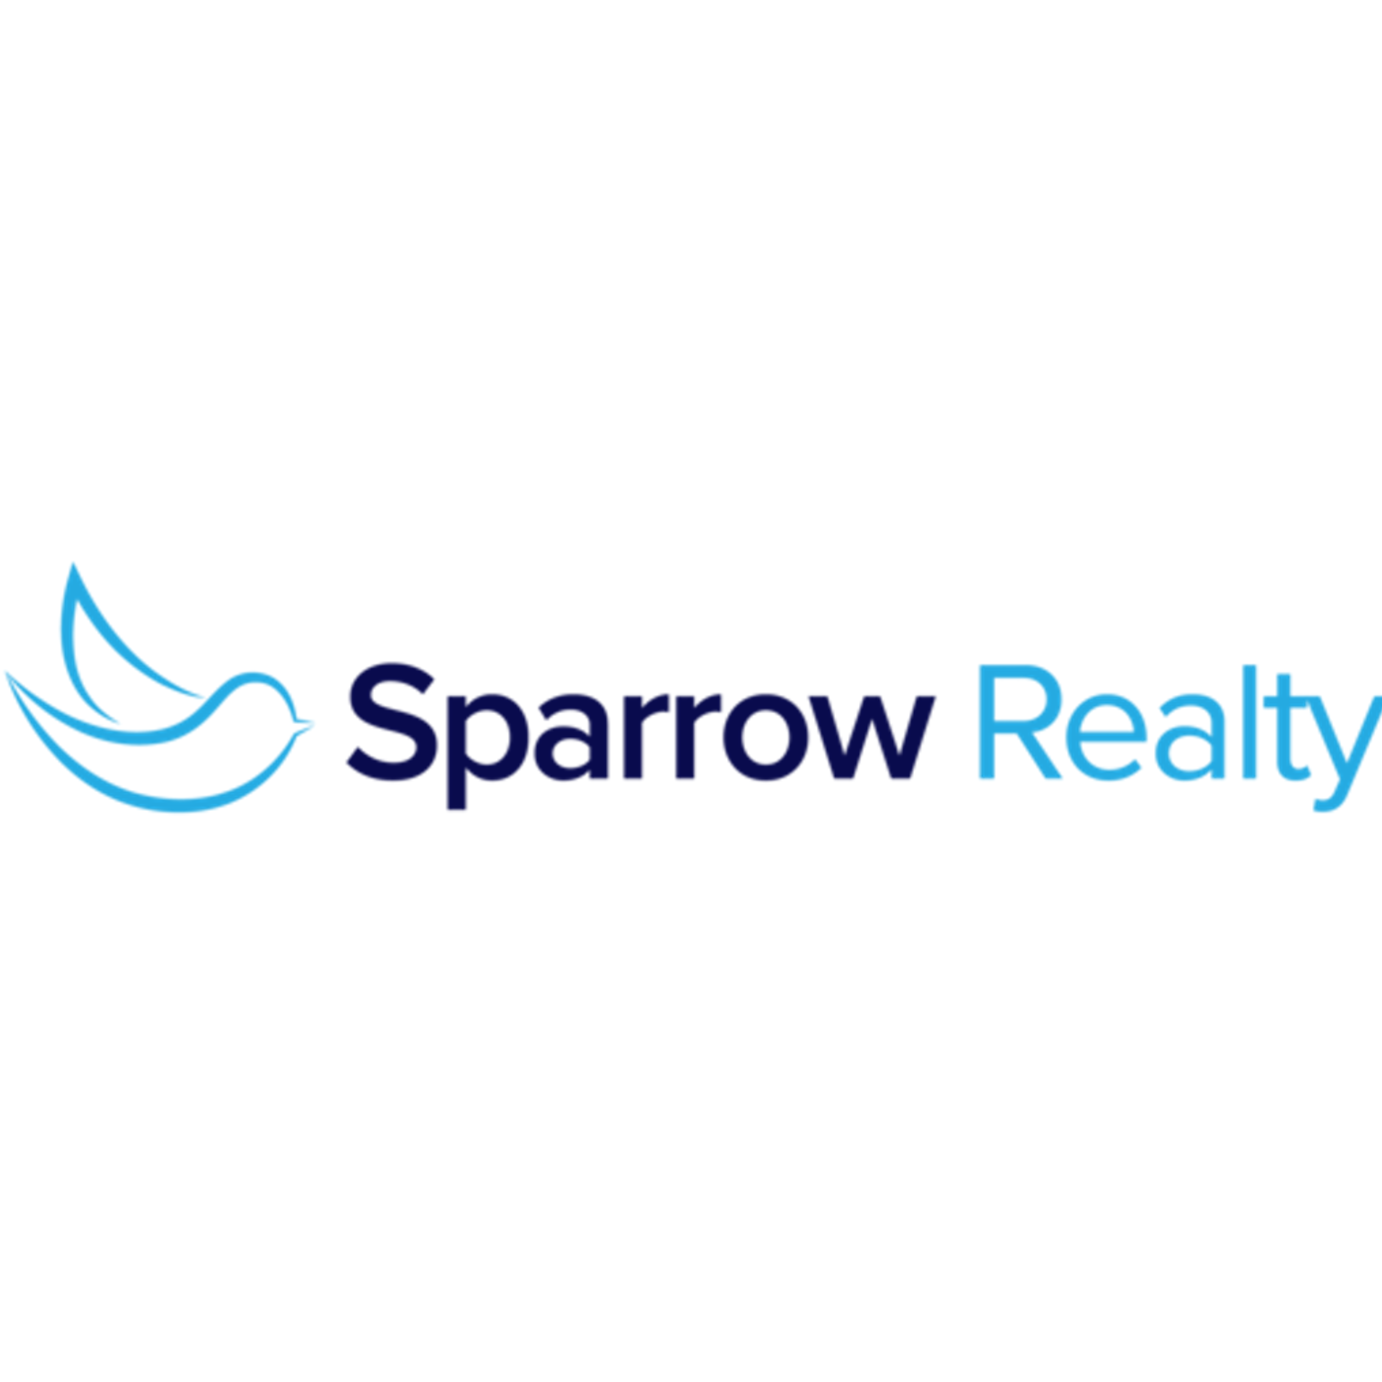 Sparrow Realty image 1